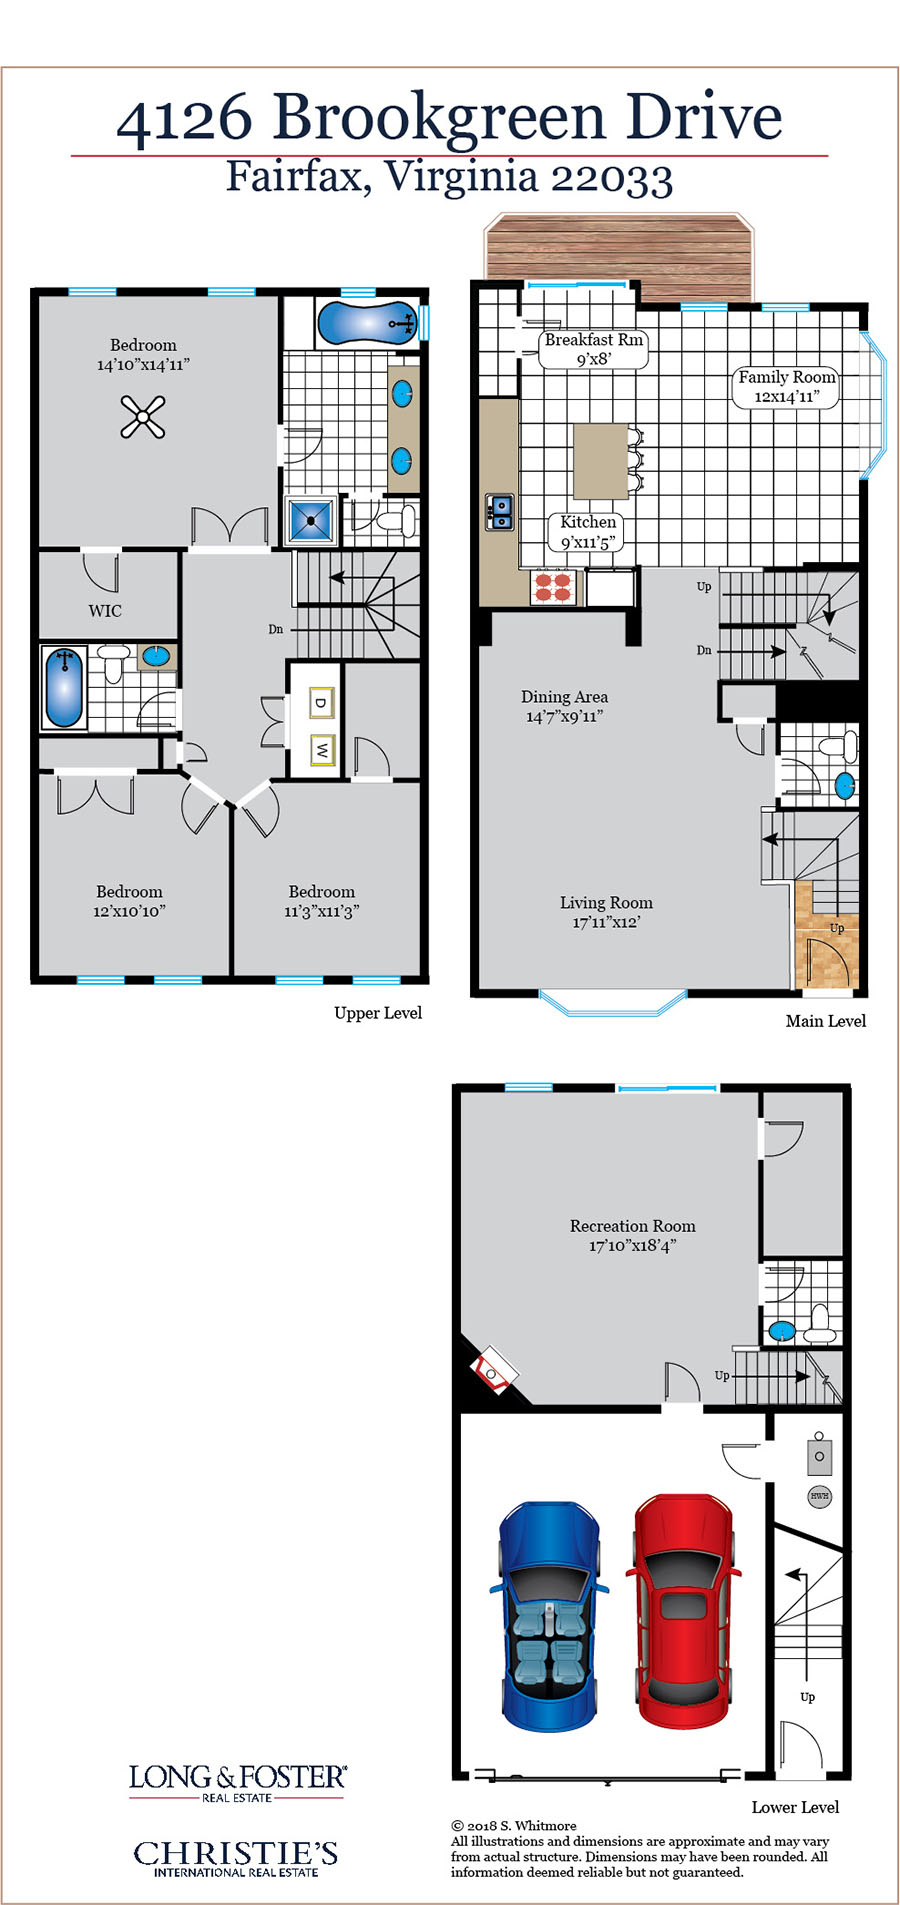 340_floorplan_level-web-01 Brookgreen Fairfax Real Estate Listings - Best of Northern Virginia